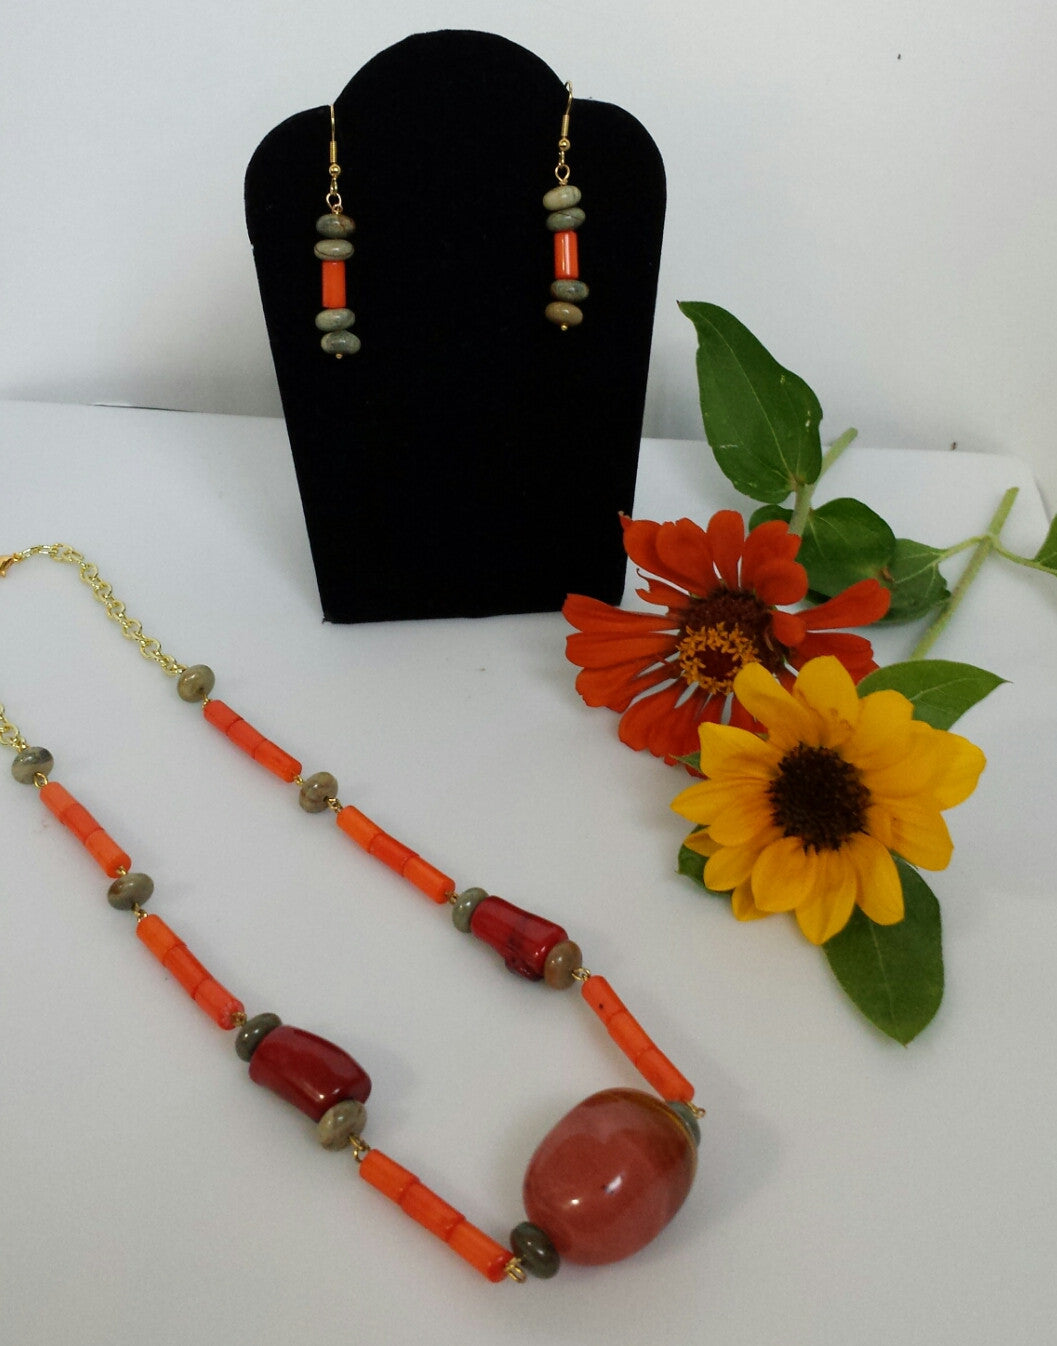 Beads in coral, organic, jasper necklace and earrings